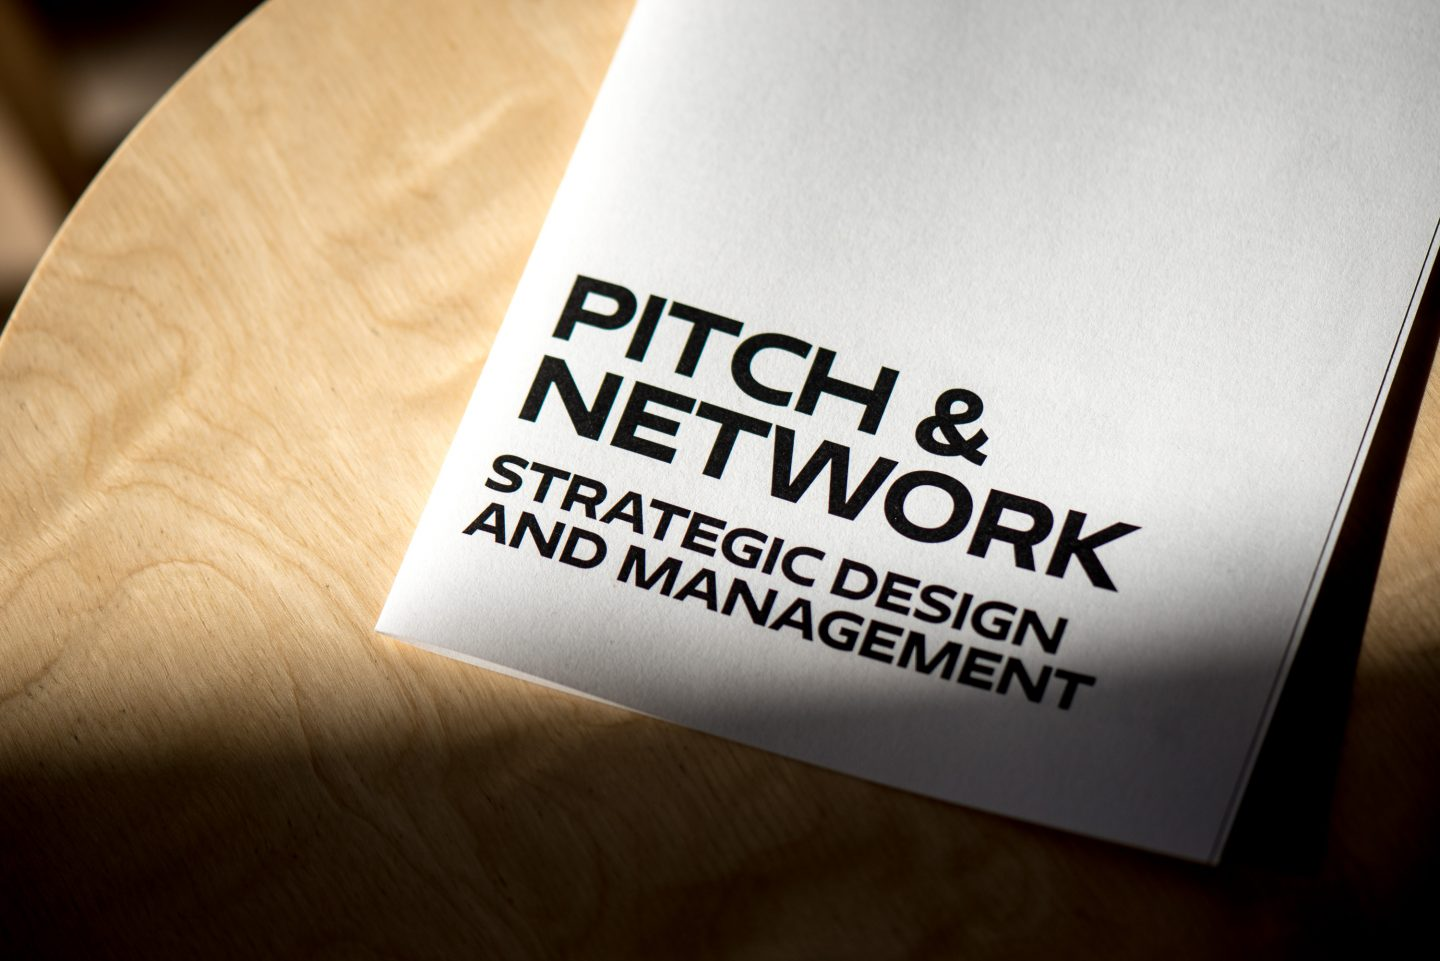 SDM Pitch & Network